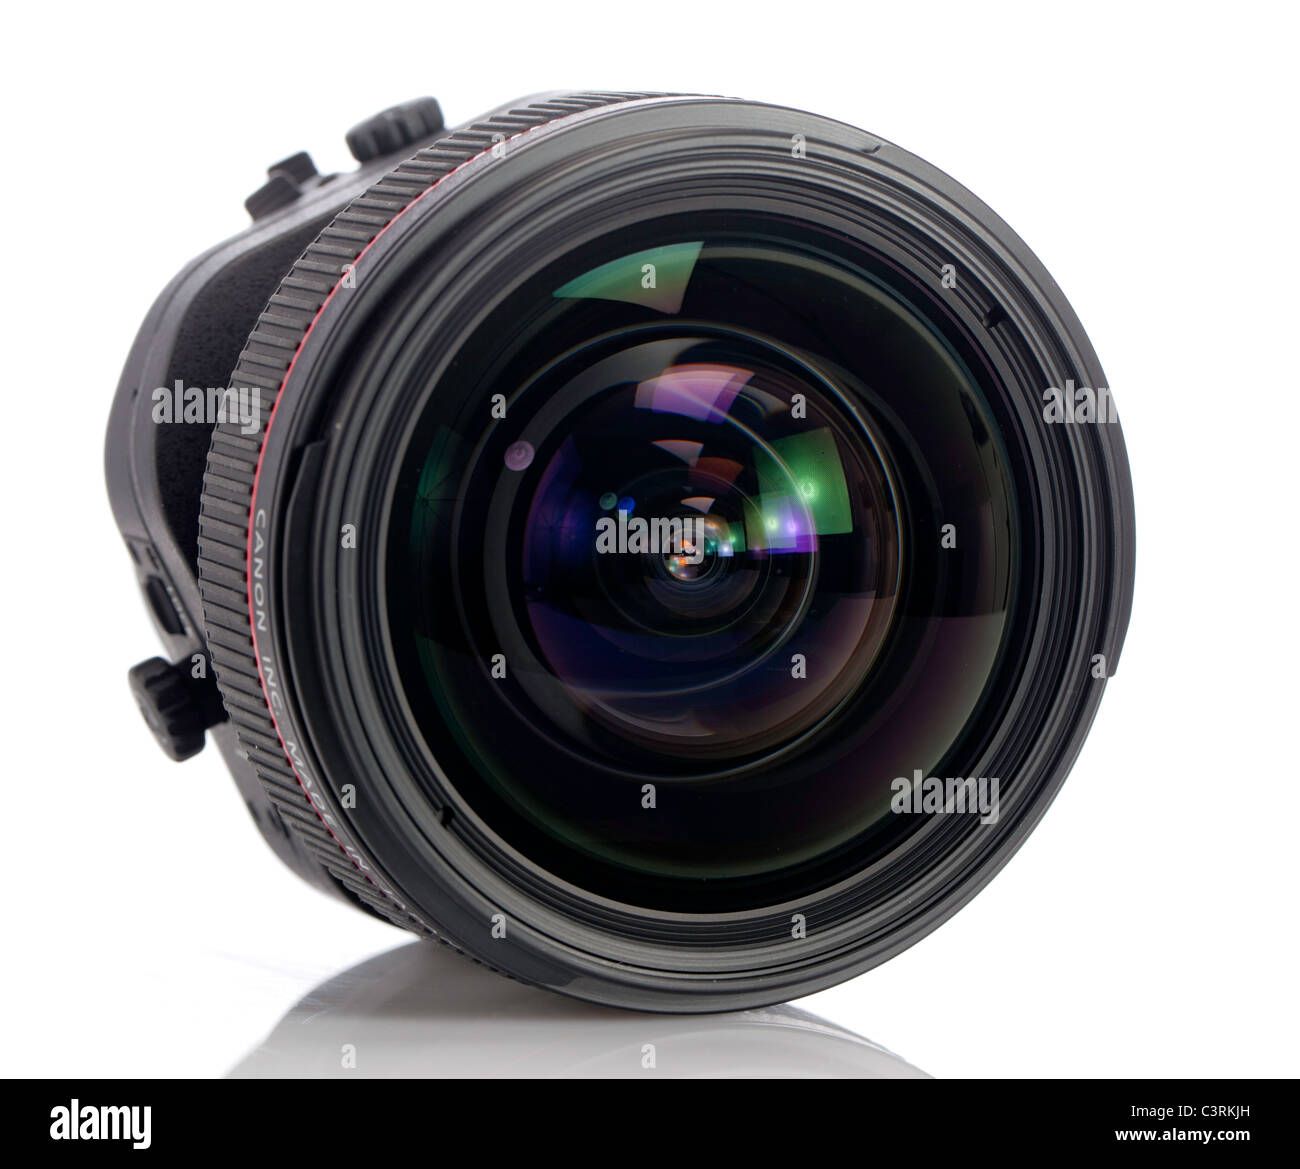 Frontal view of a new Canon tilt-shift lens - Stock Image